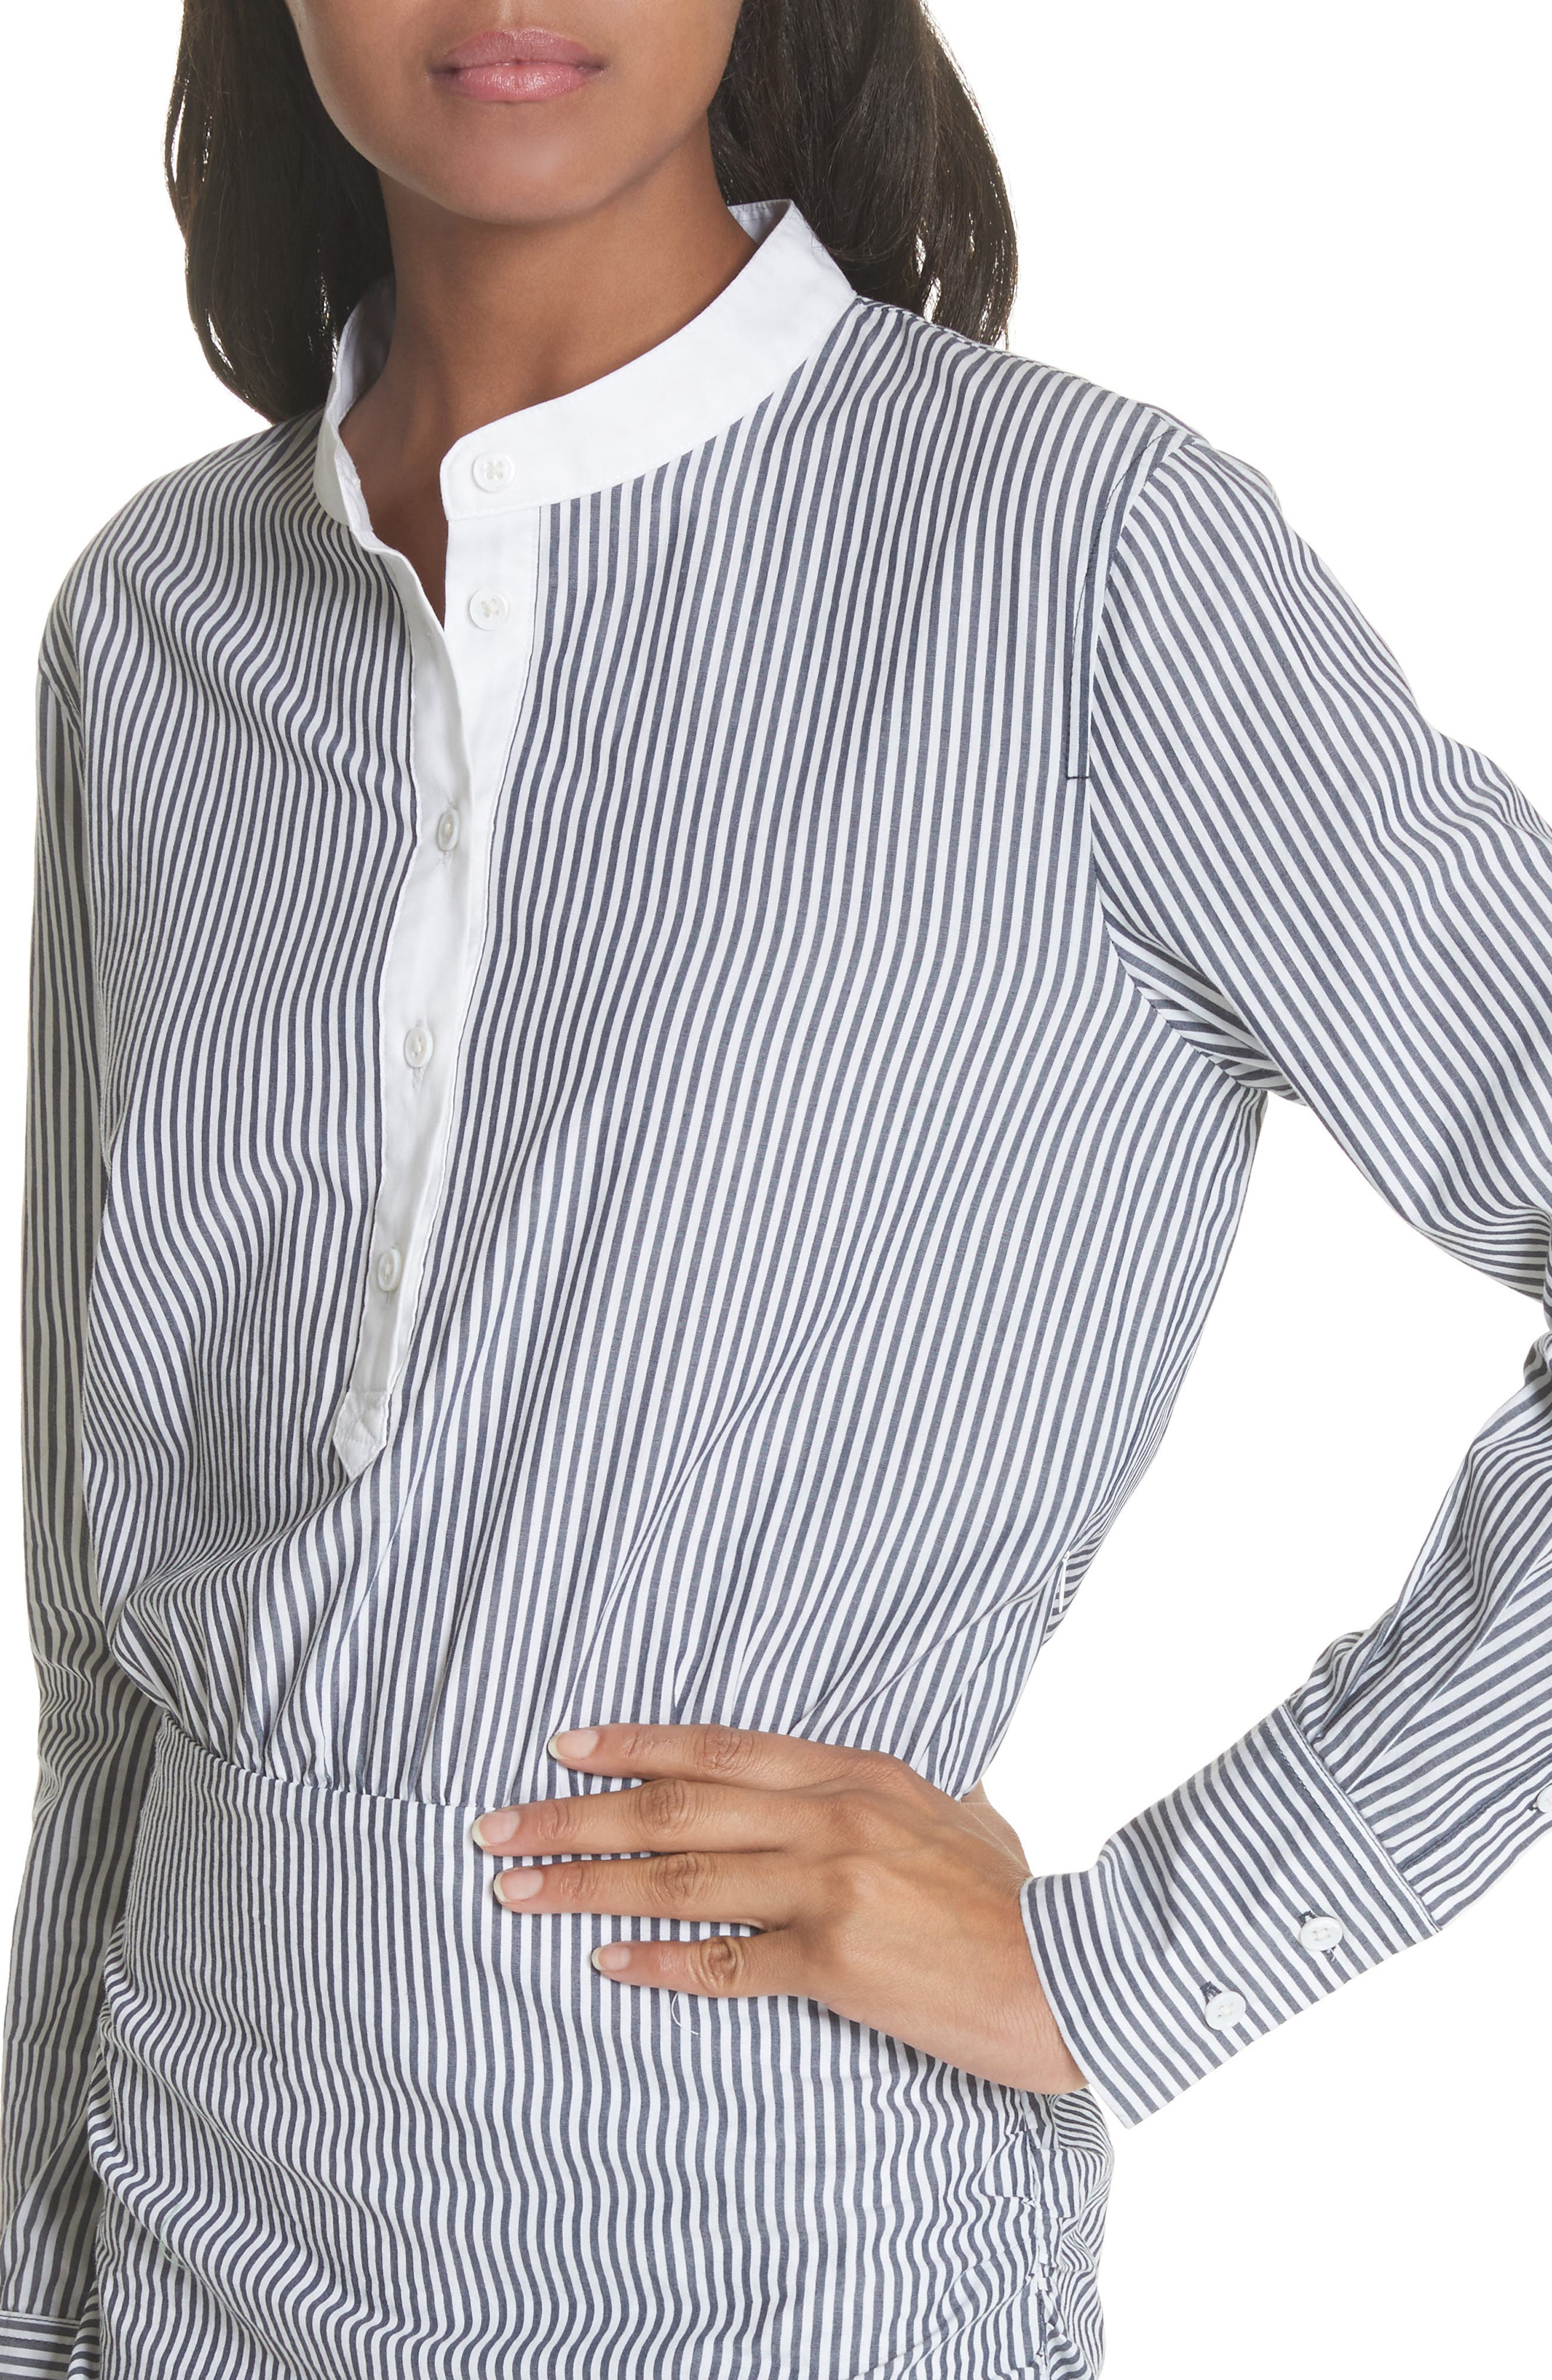 Everett Stripe Shirtdress,                             Alternate thumbnail 4, color,                             007